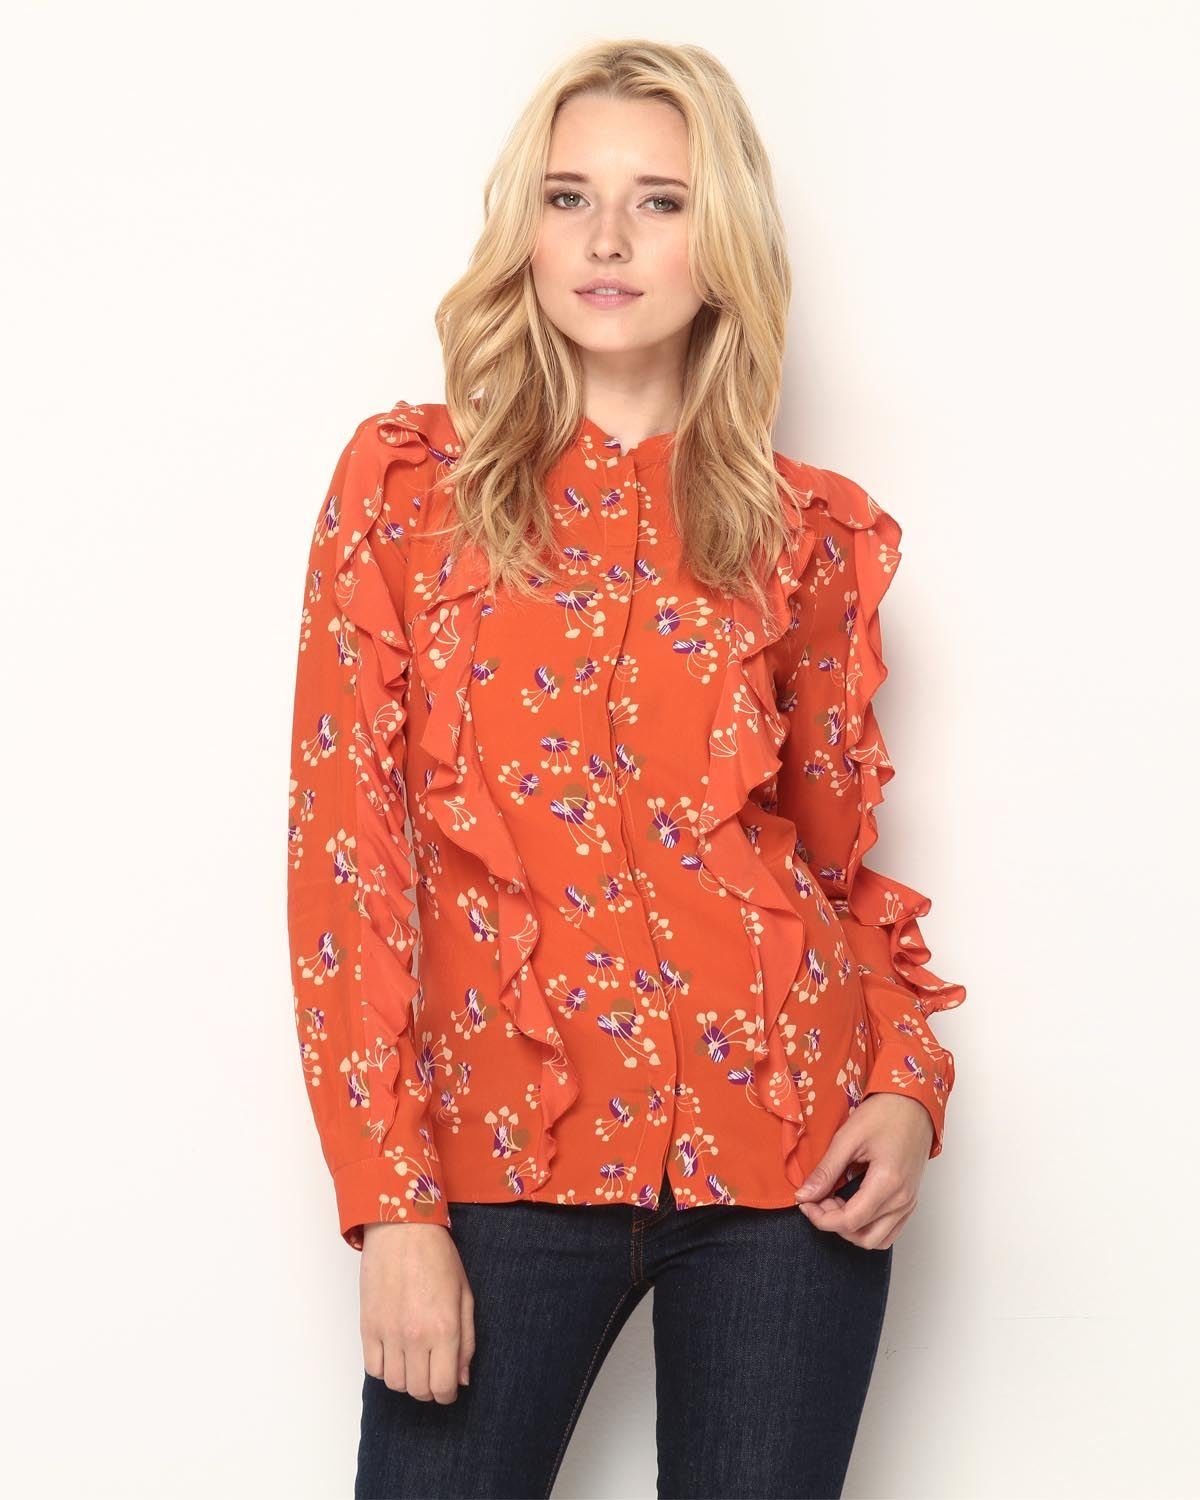 See by Chloe Ruffle Blouse - Made In Italy $139